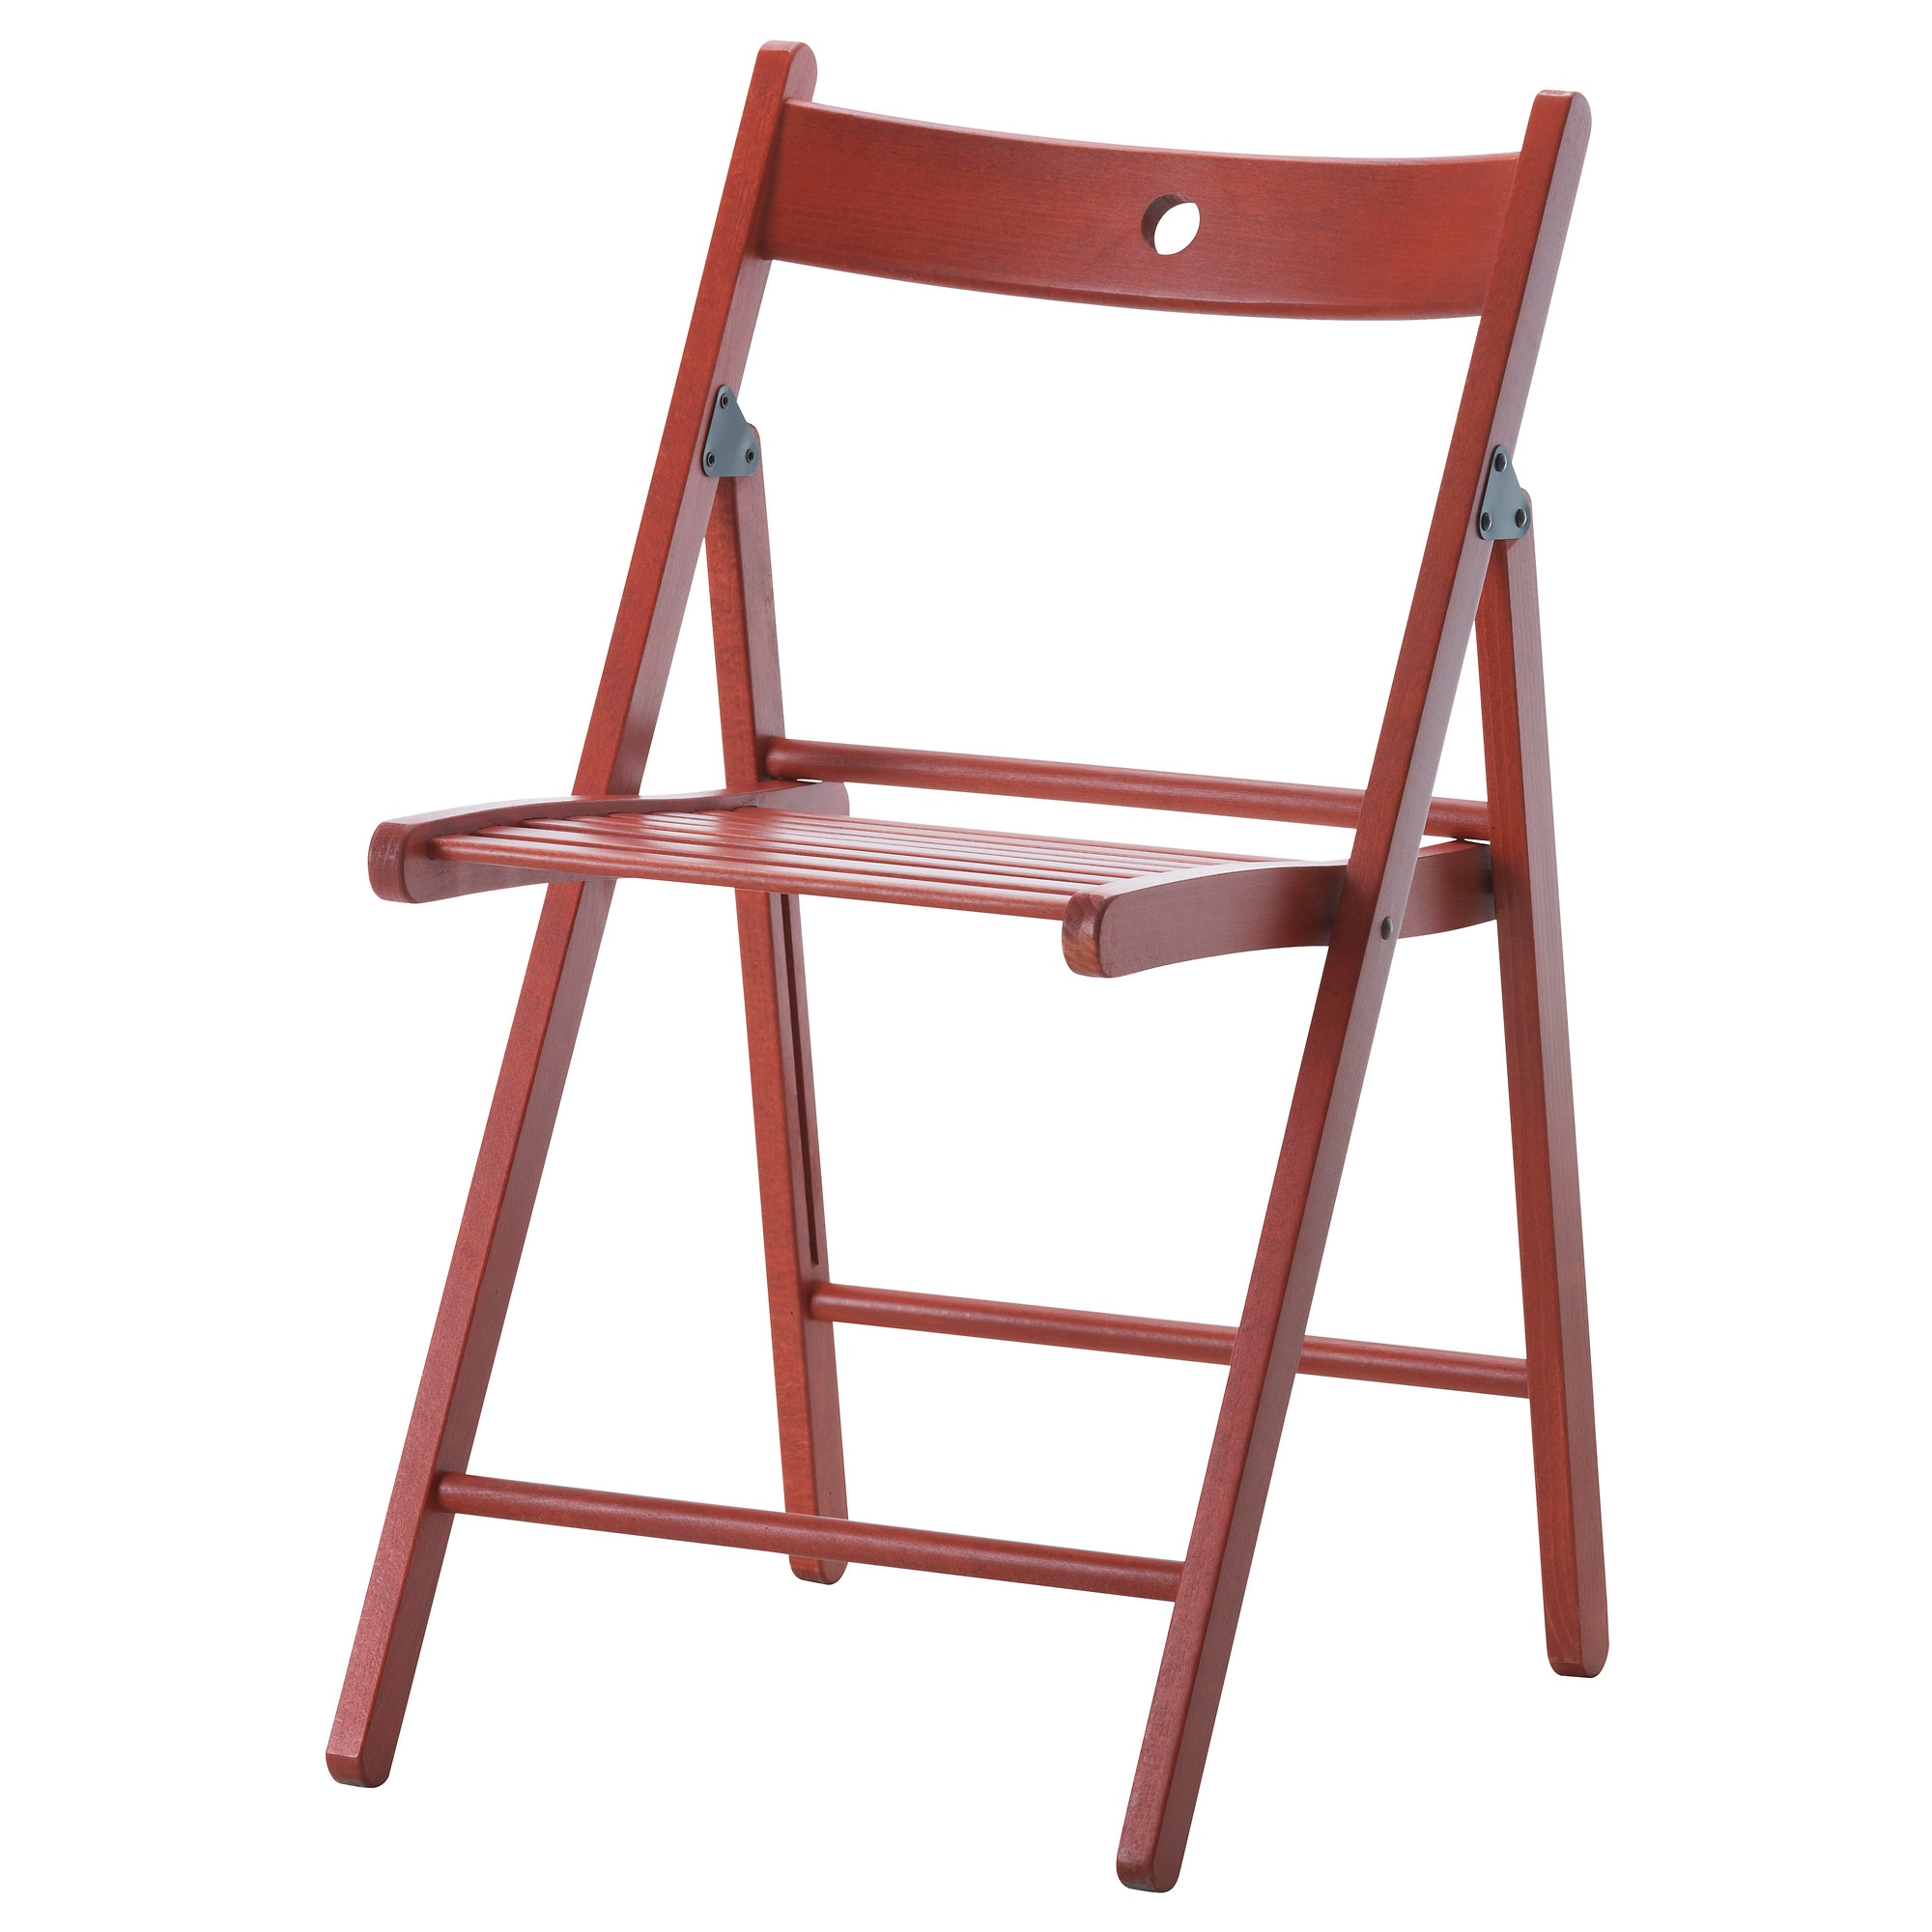 TERJE Folding Chair IKEA - Collapsible chairs